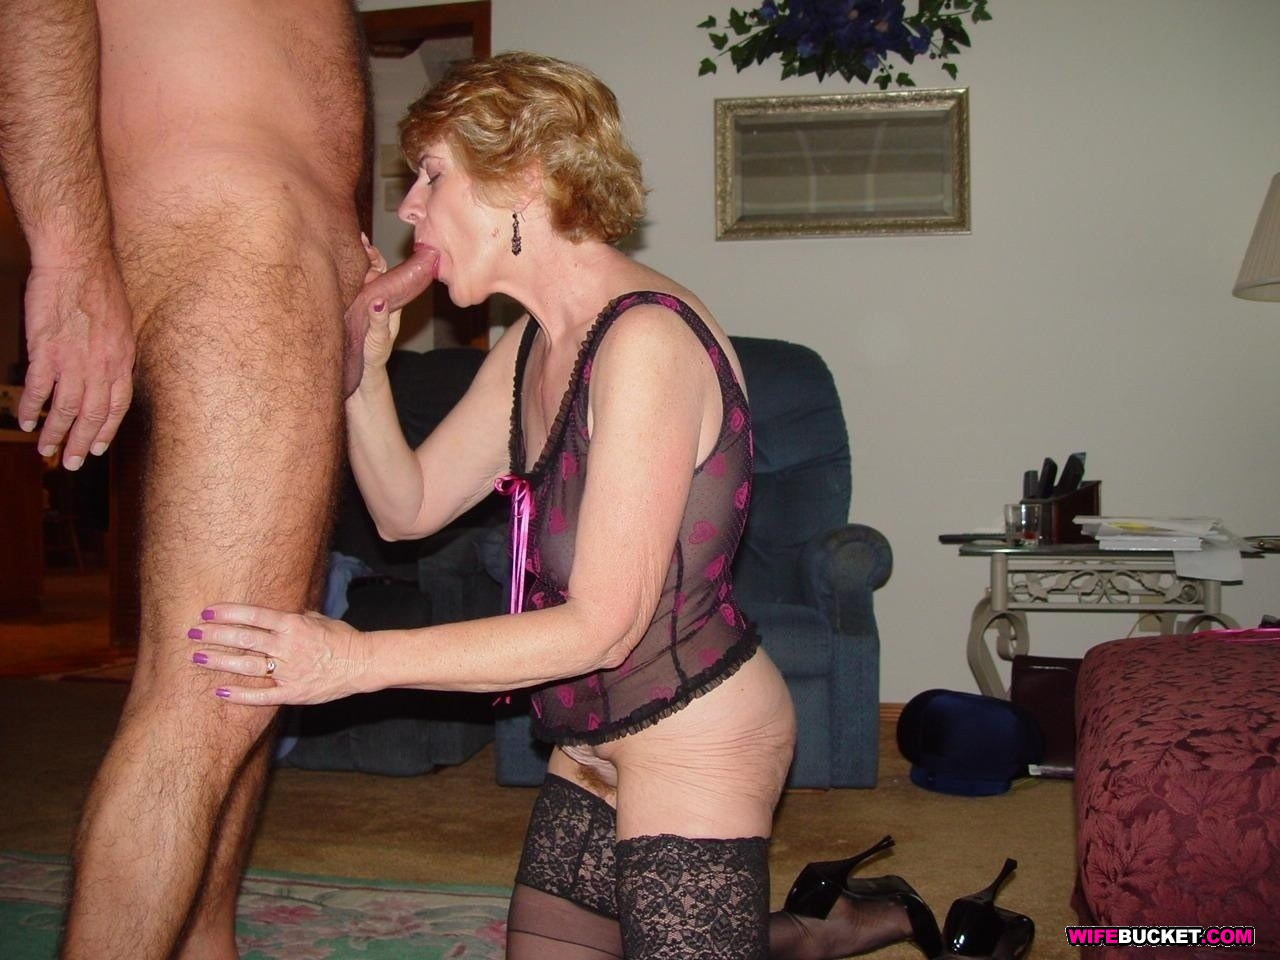 Amature milf wife